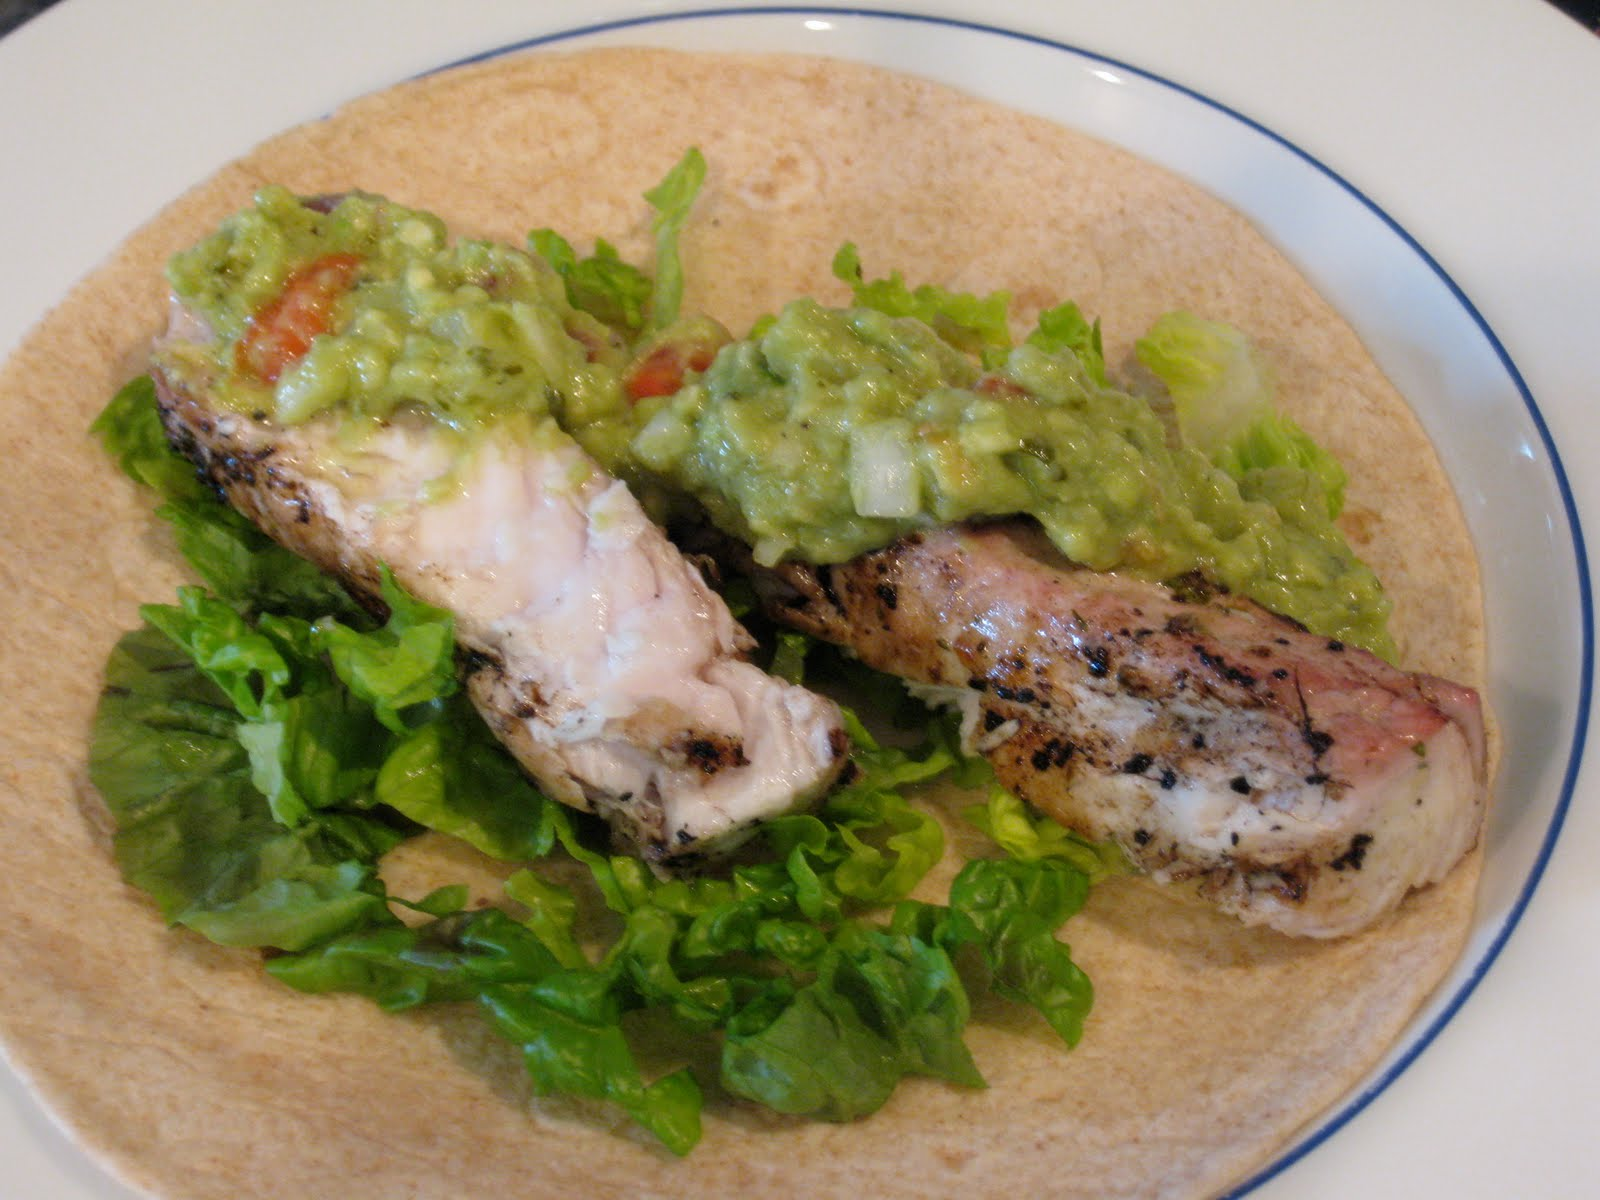 Good Clean Fun: Tequila Lime Fish Tacos